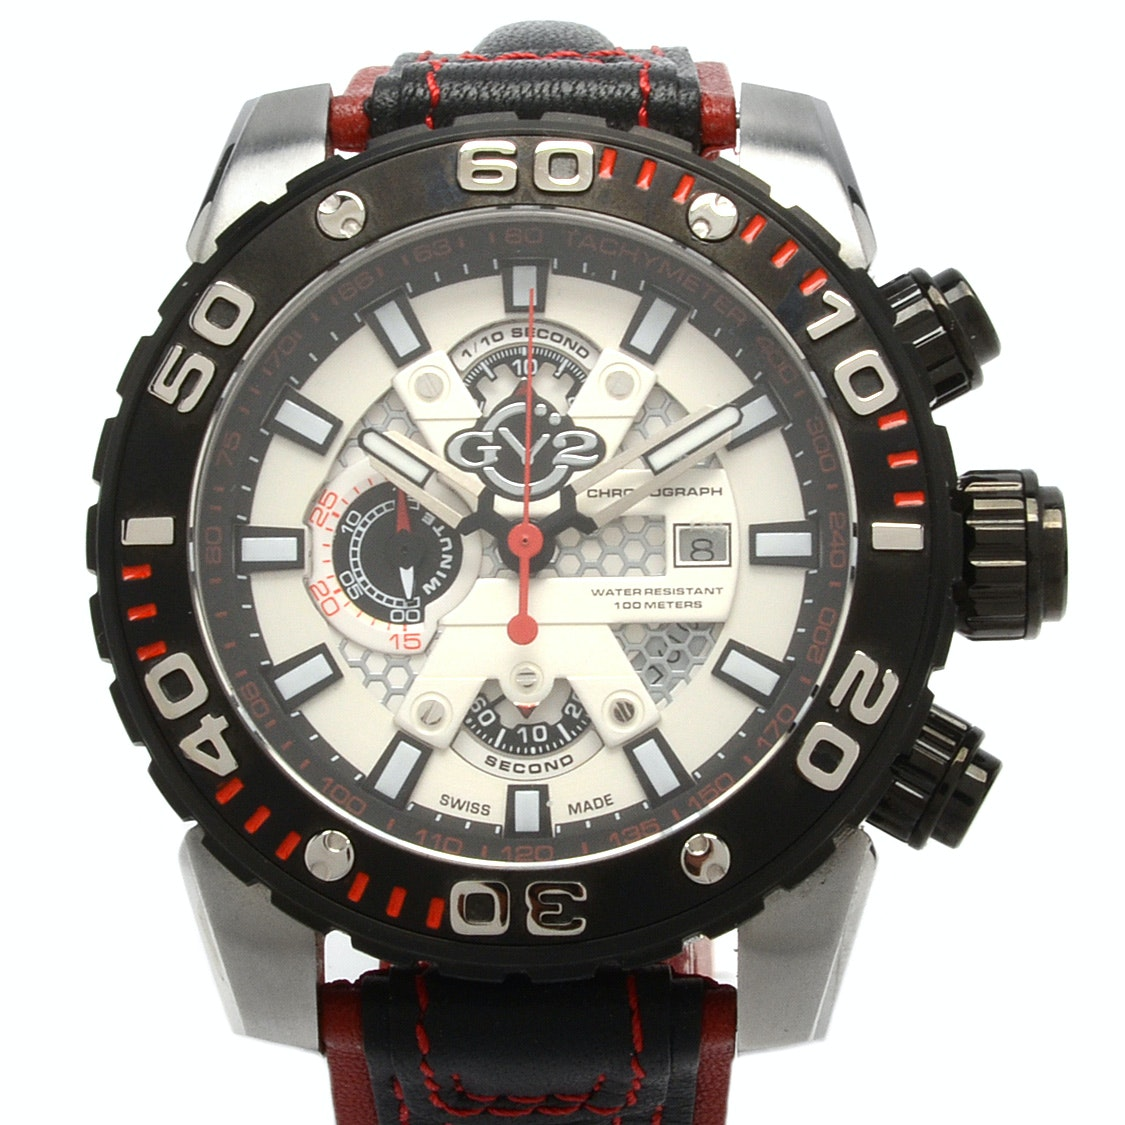 GV2 by Gevril Limited Edition Swiss Chronograph Model 1401